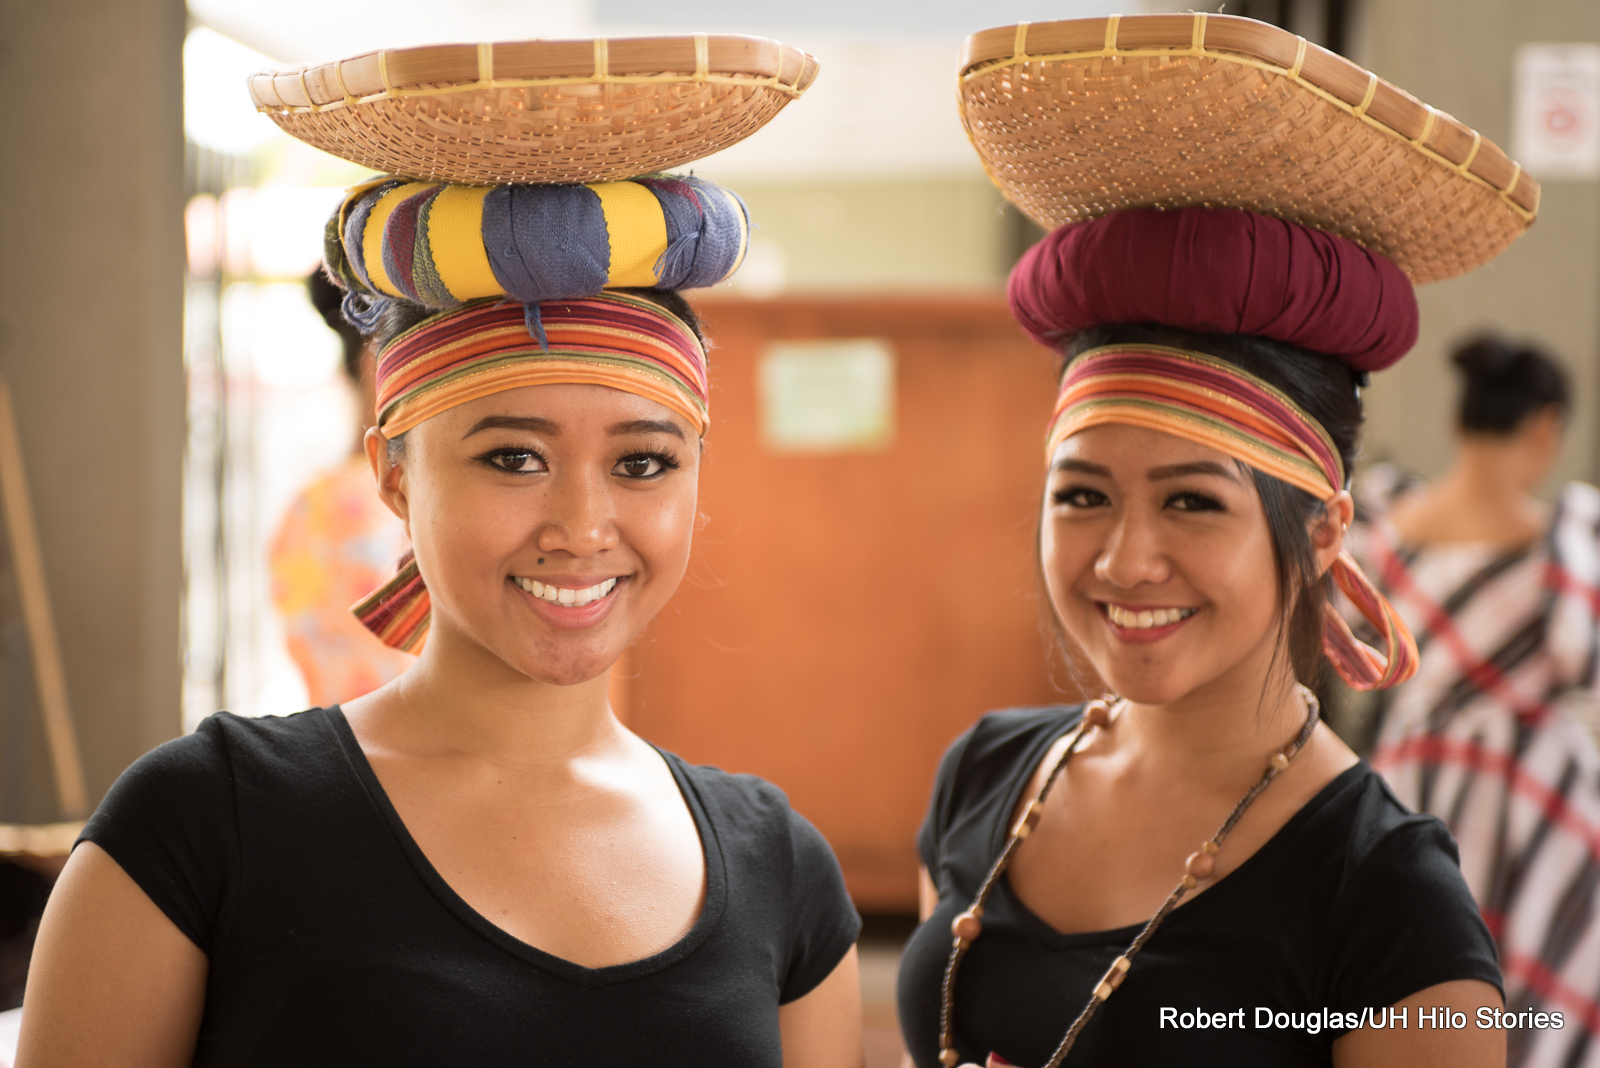 Two women balancing baskets on their heads.